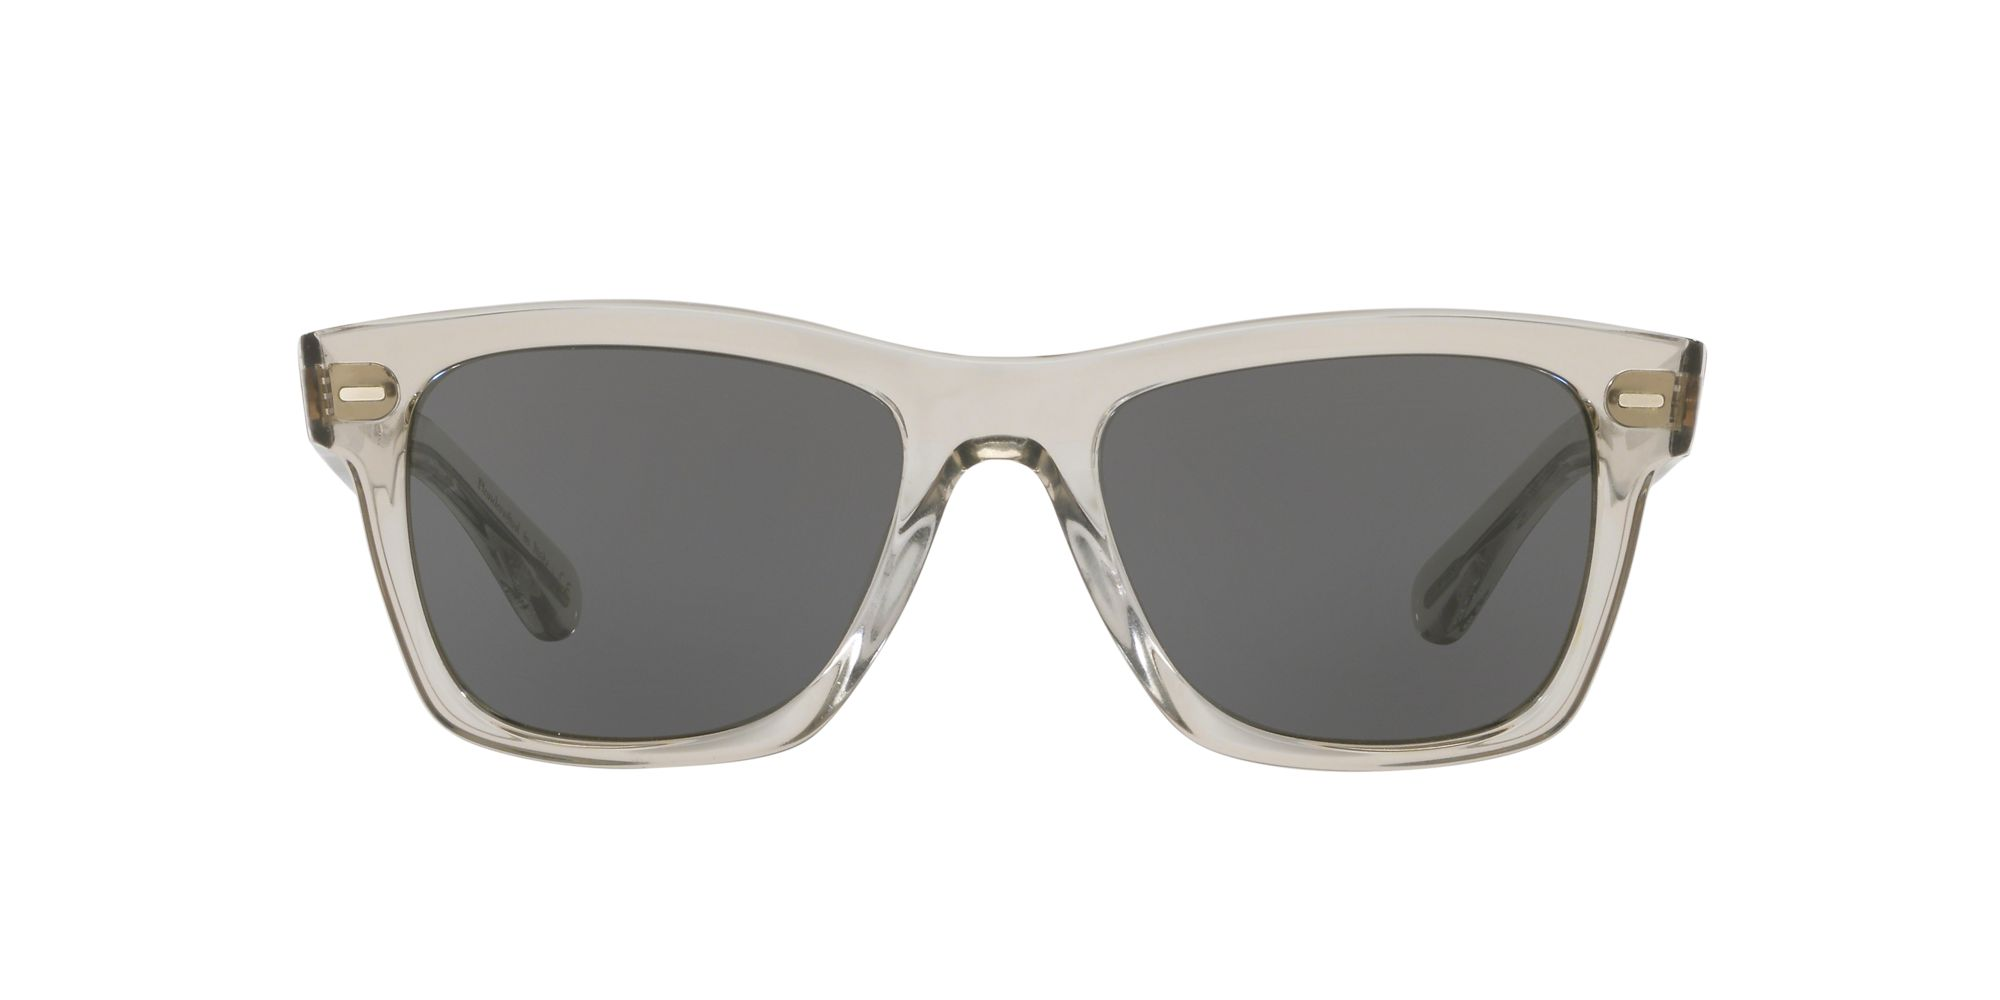 Oliver Peoples oliver sun black diamond